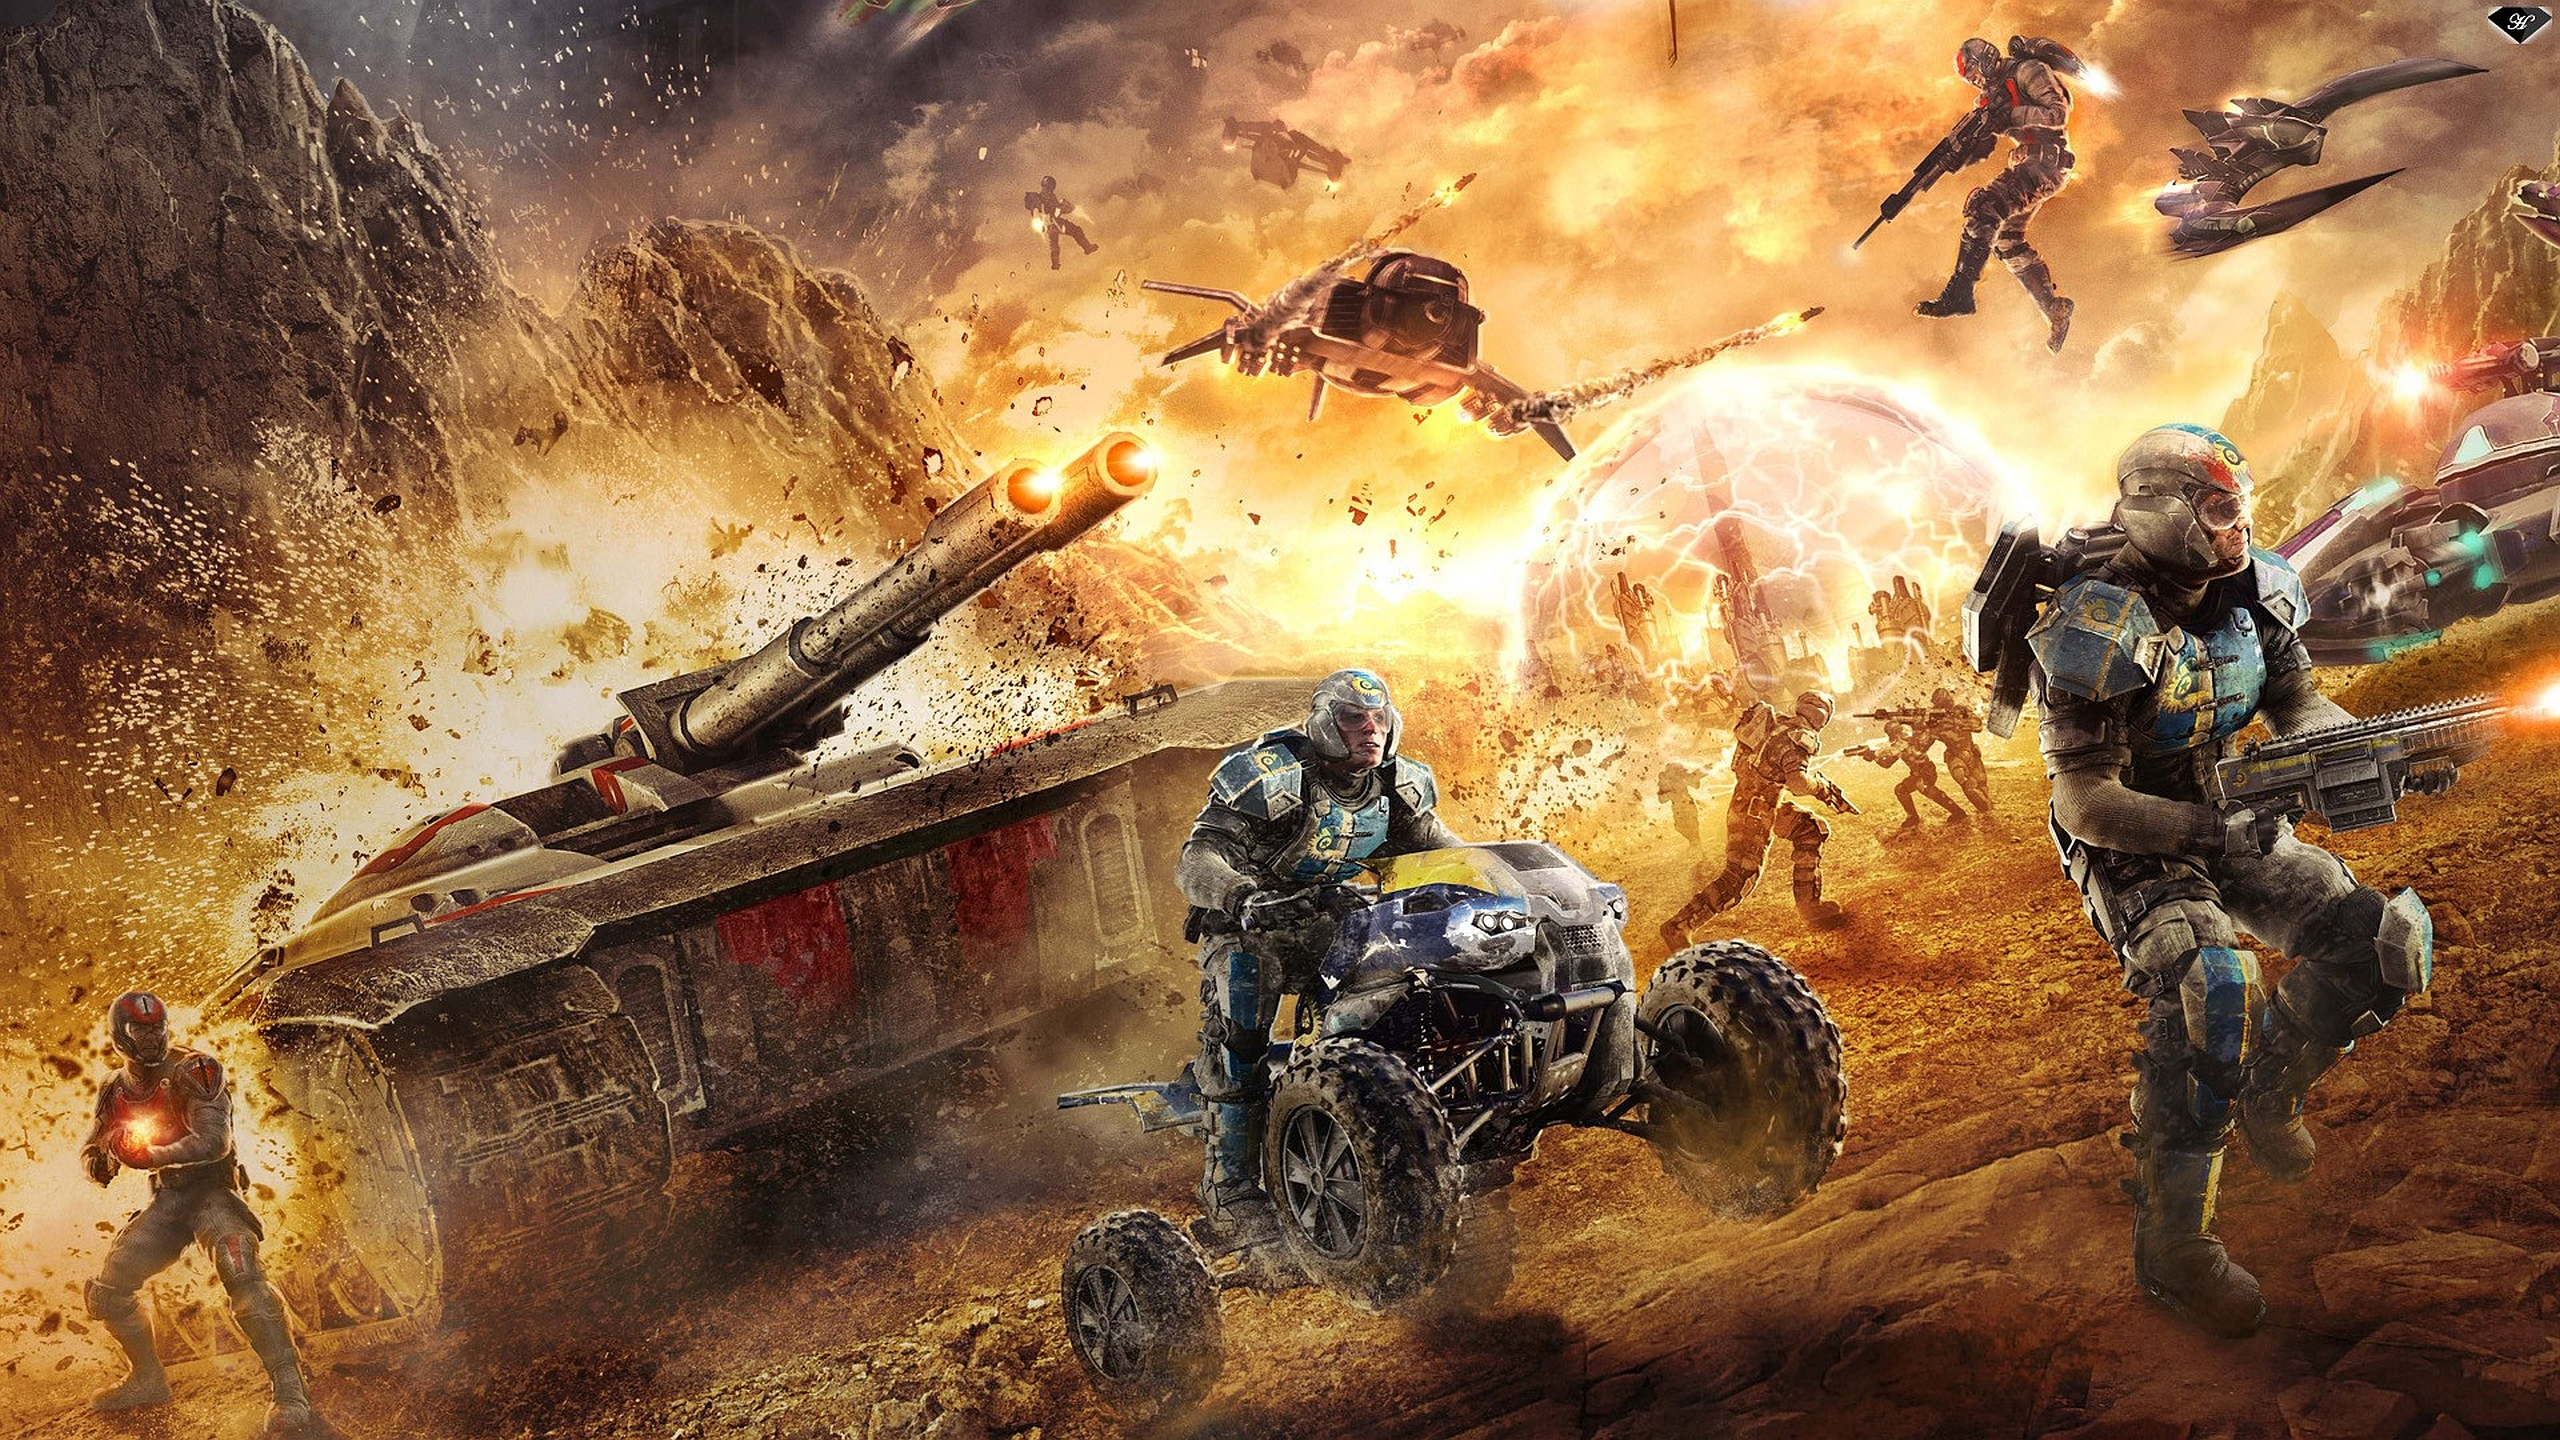 Planetside 2 Computer Wallpapers, Desktop Backgrounds | 2560x1440 | ID ...